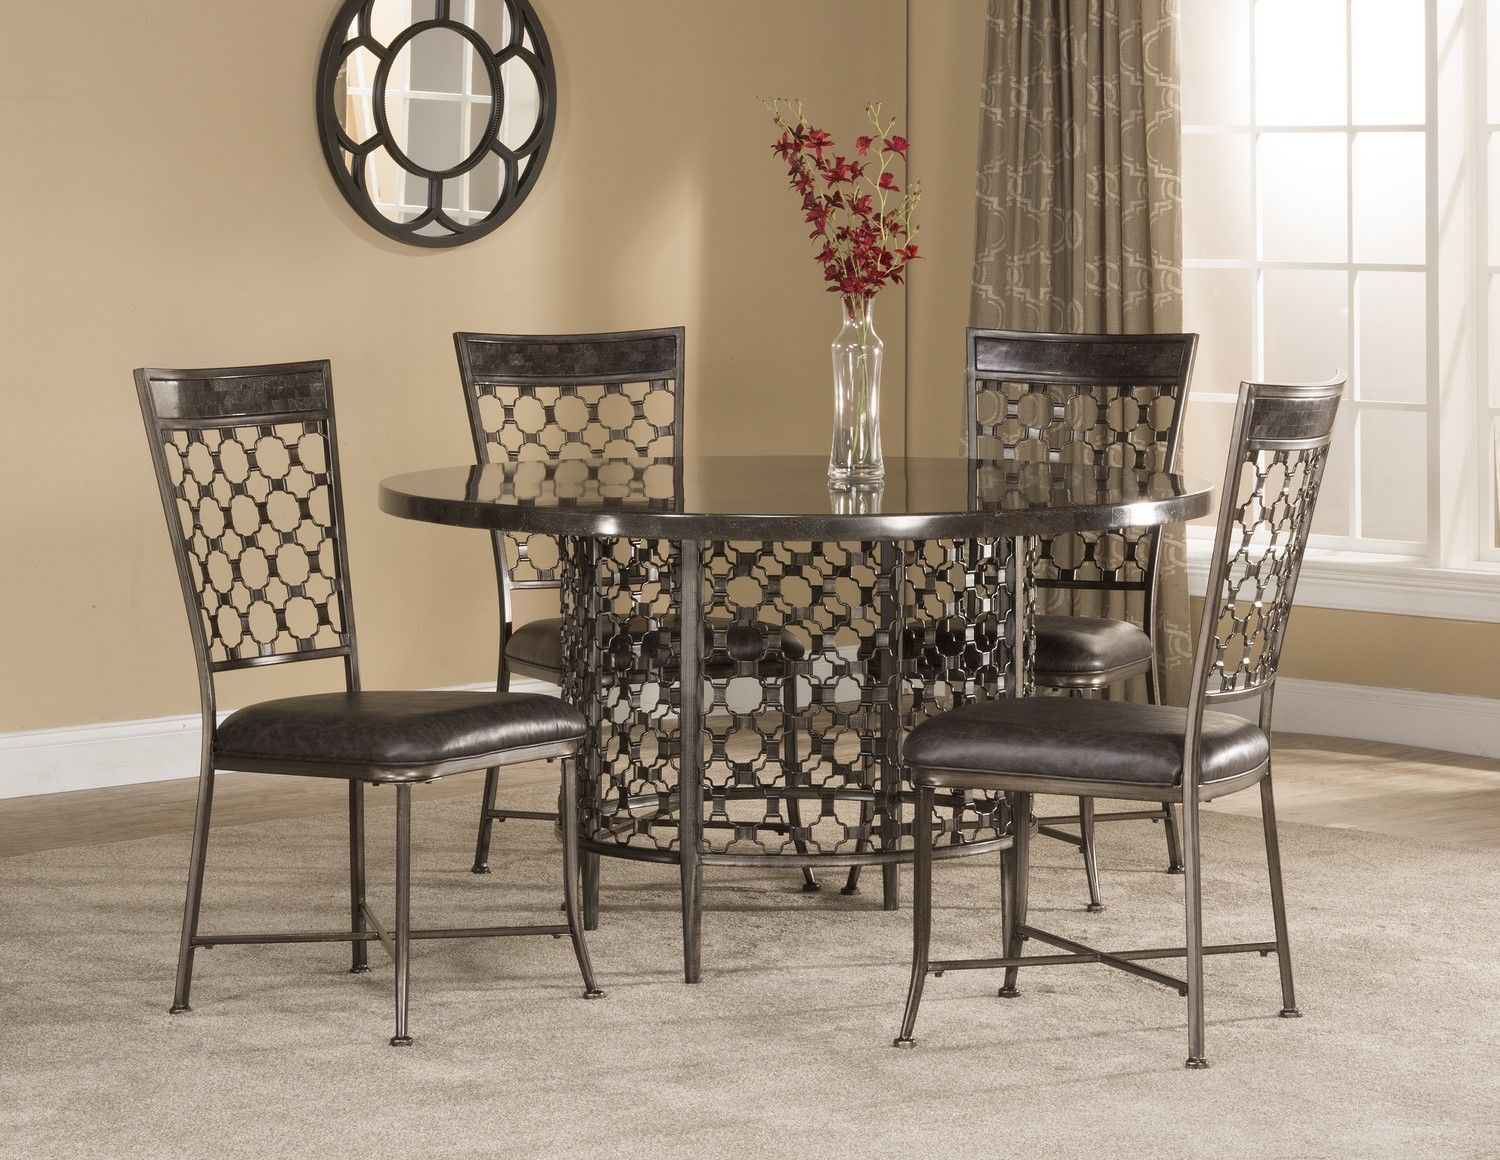 Hillsdale brescello 5 piece round dining room set buy for 5 piece dining room sets cheap